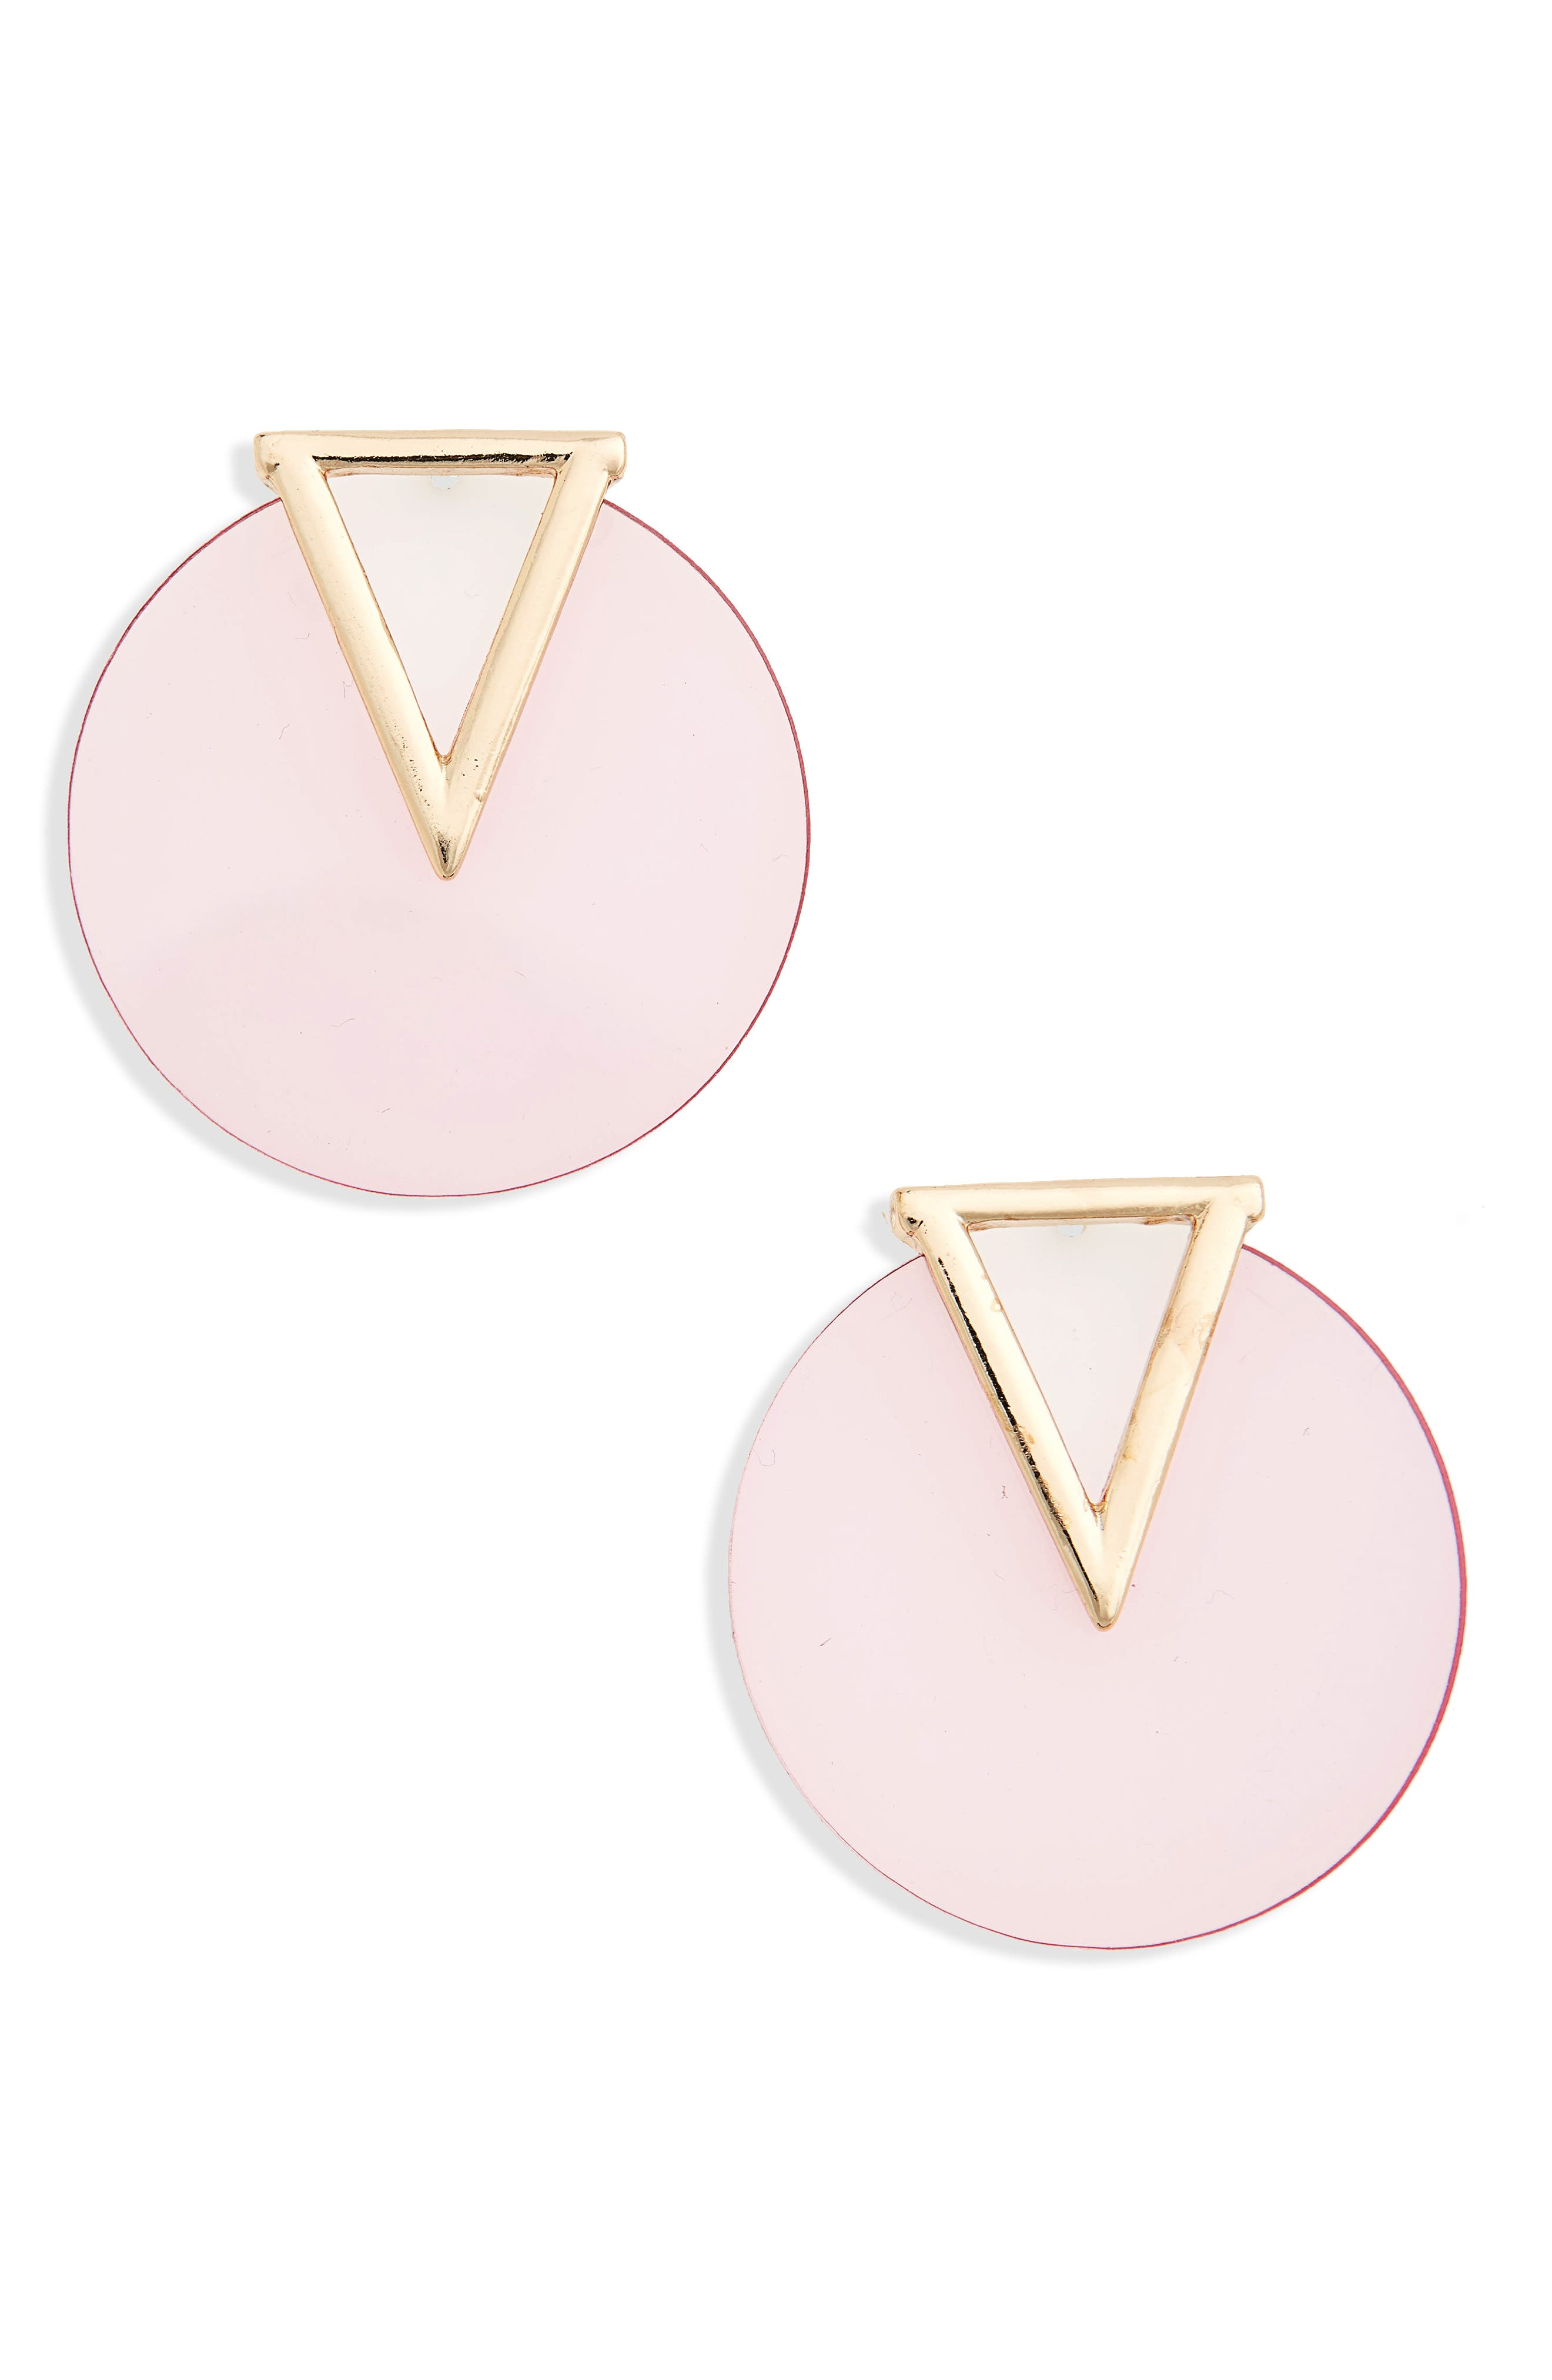 Triangle & Circle Statement Earrings,                             Main thumbnail 1, color,                             Pink/ Gold